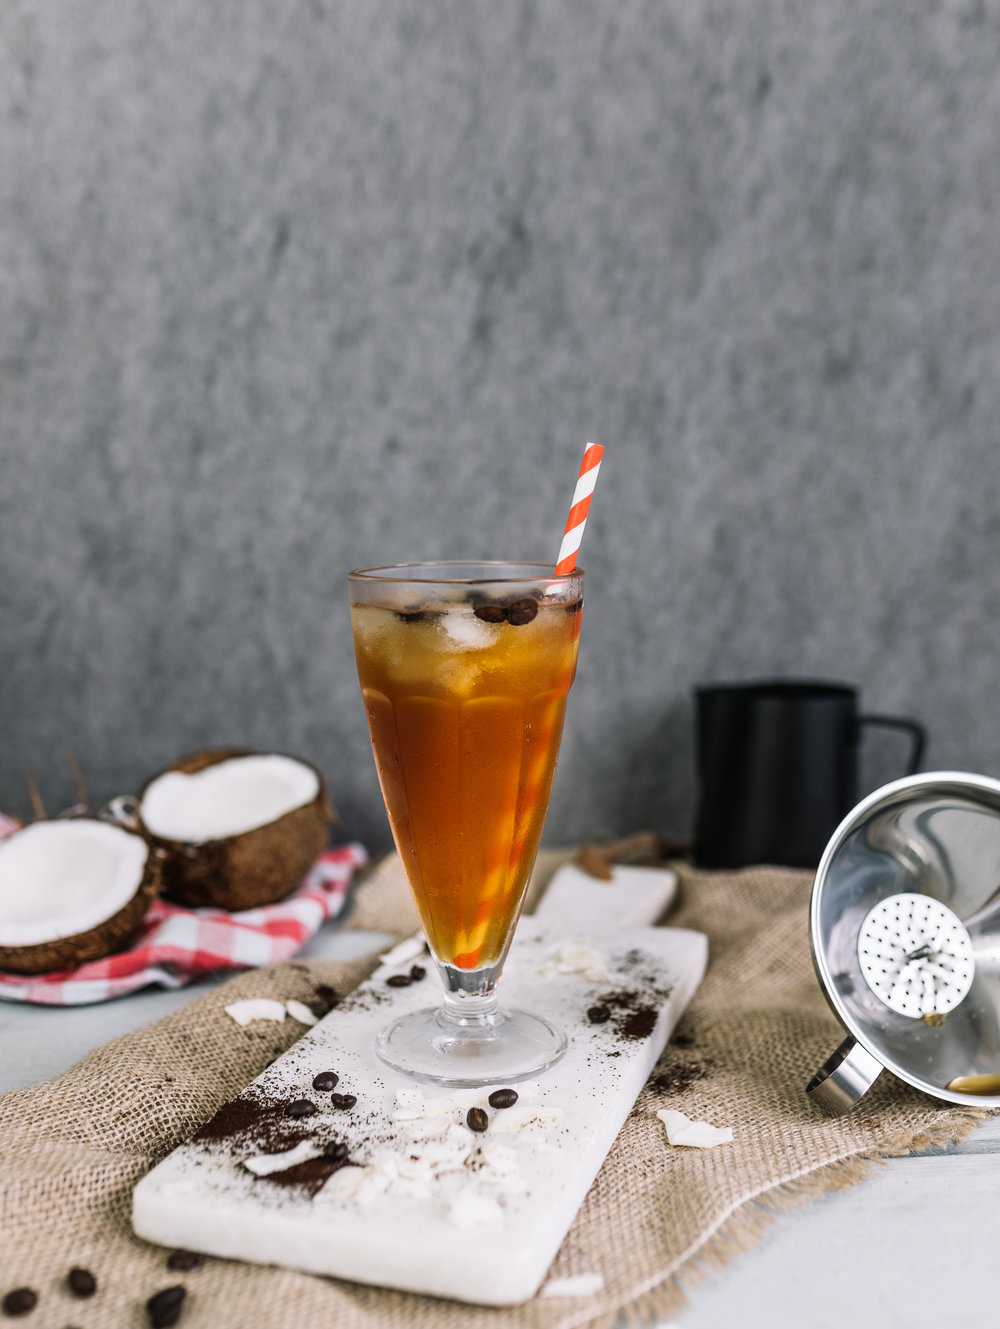 #2 Coconut ice drip coffee25.jpg